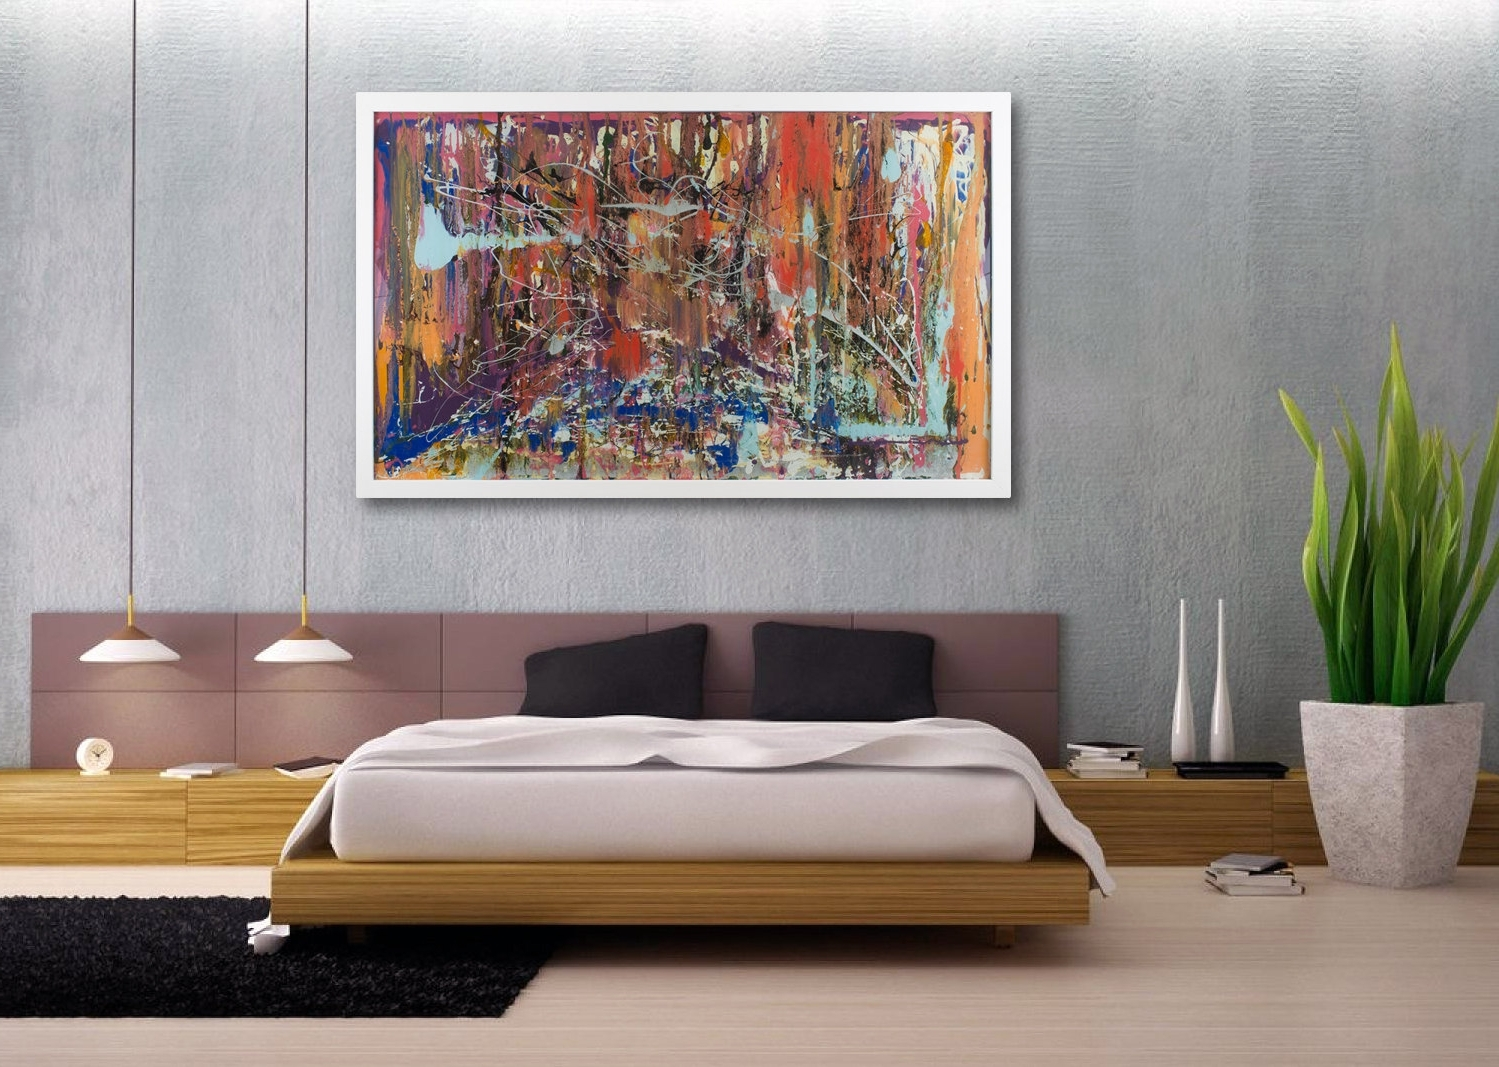 Expensive Large Canvas Wall Art Bedroom — Joanne Russo Homesjoanne With Best And Newest Etsy Wall Accents (View 4 of 15)